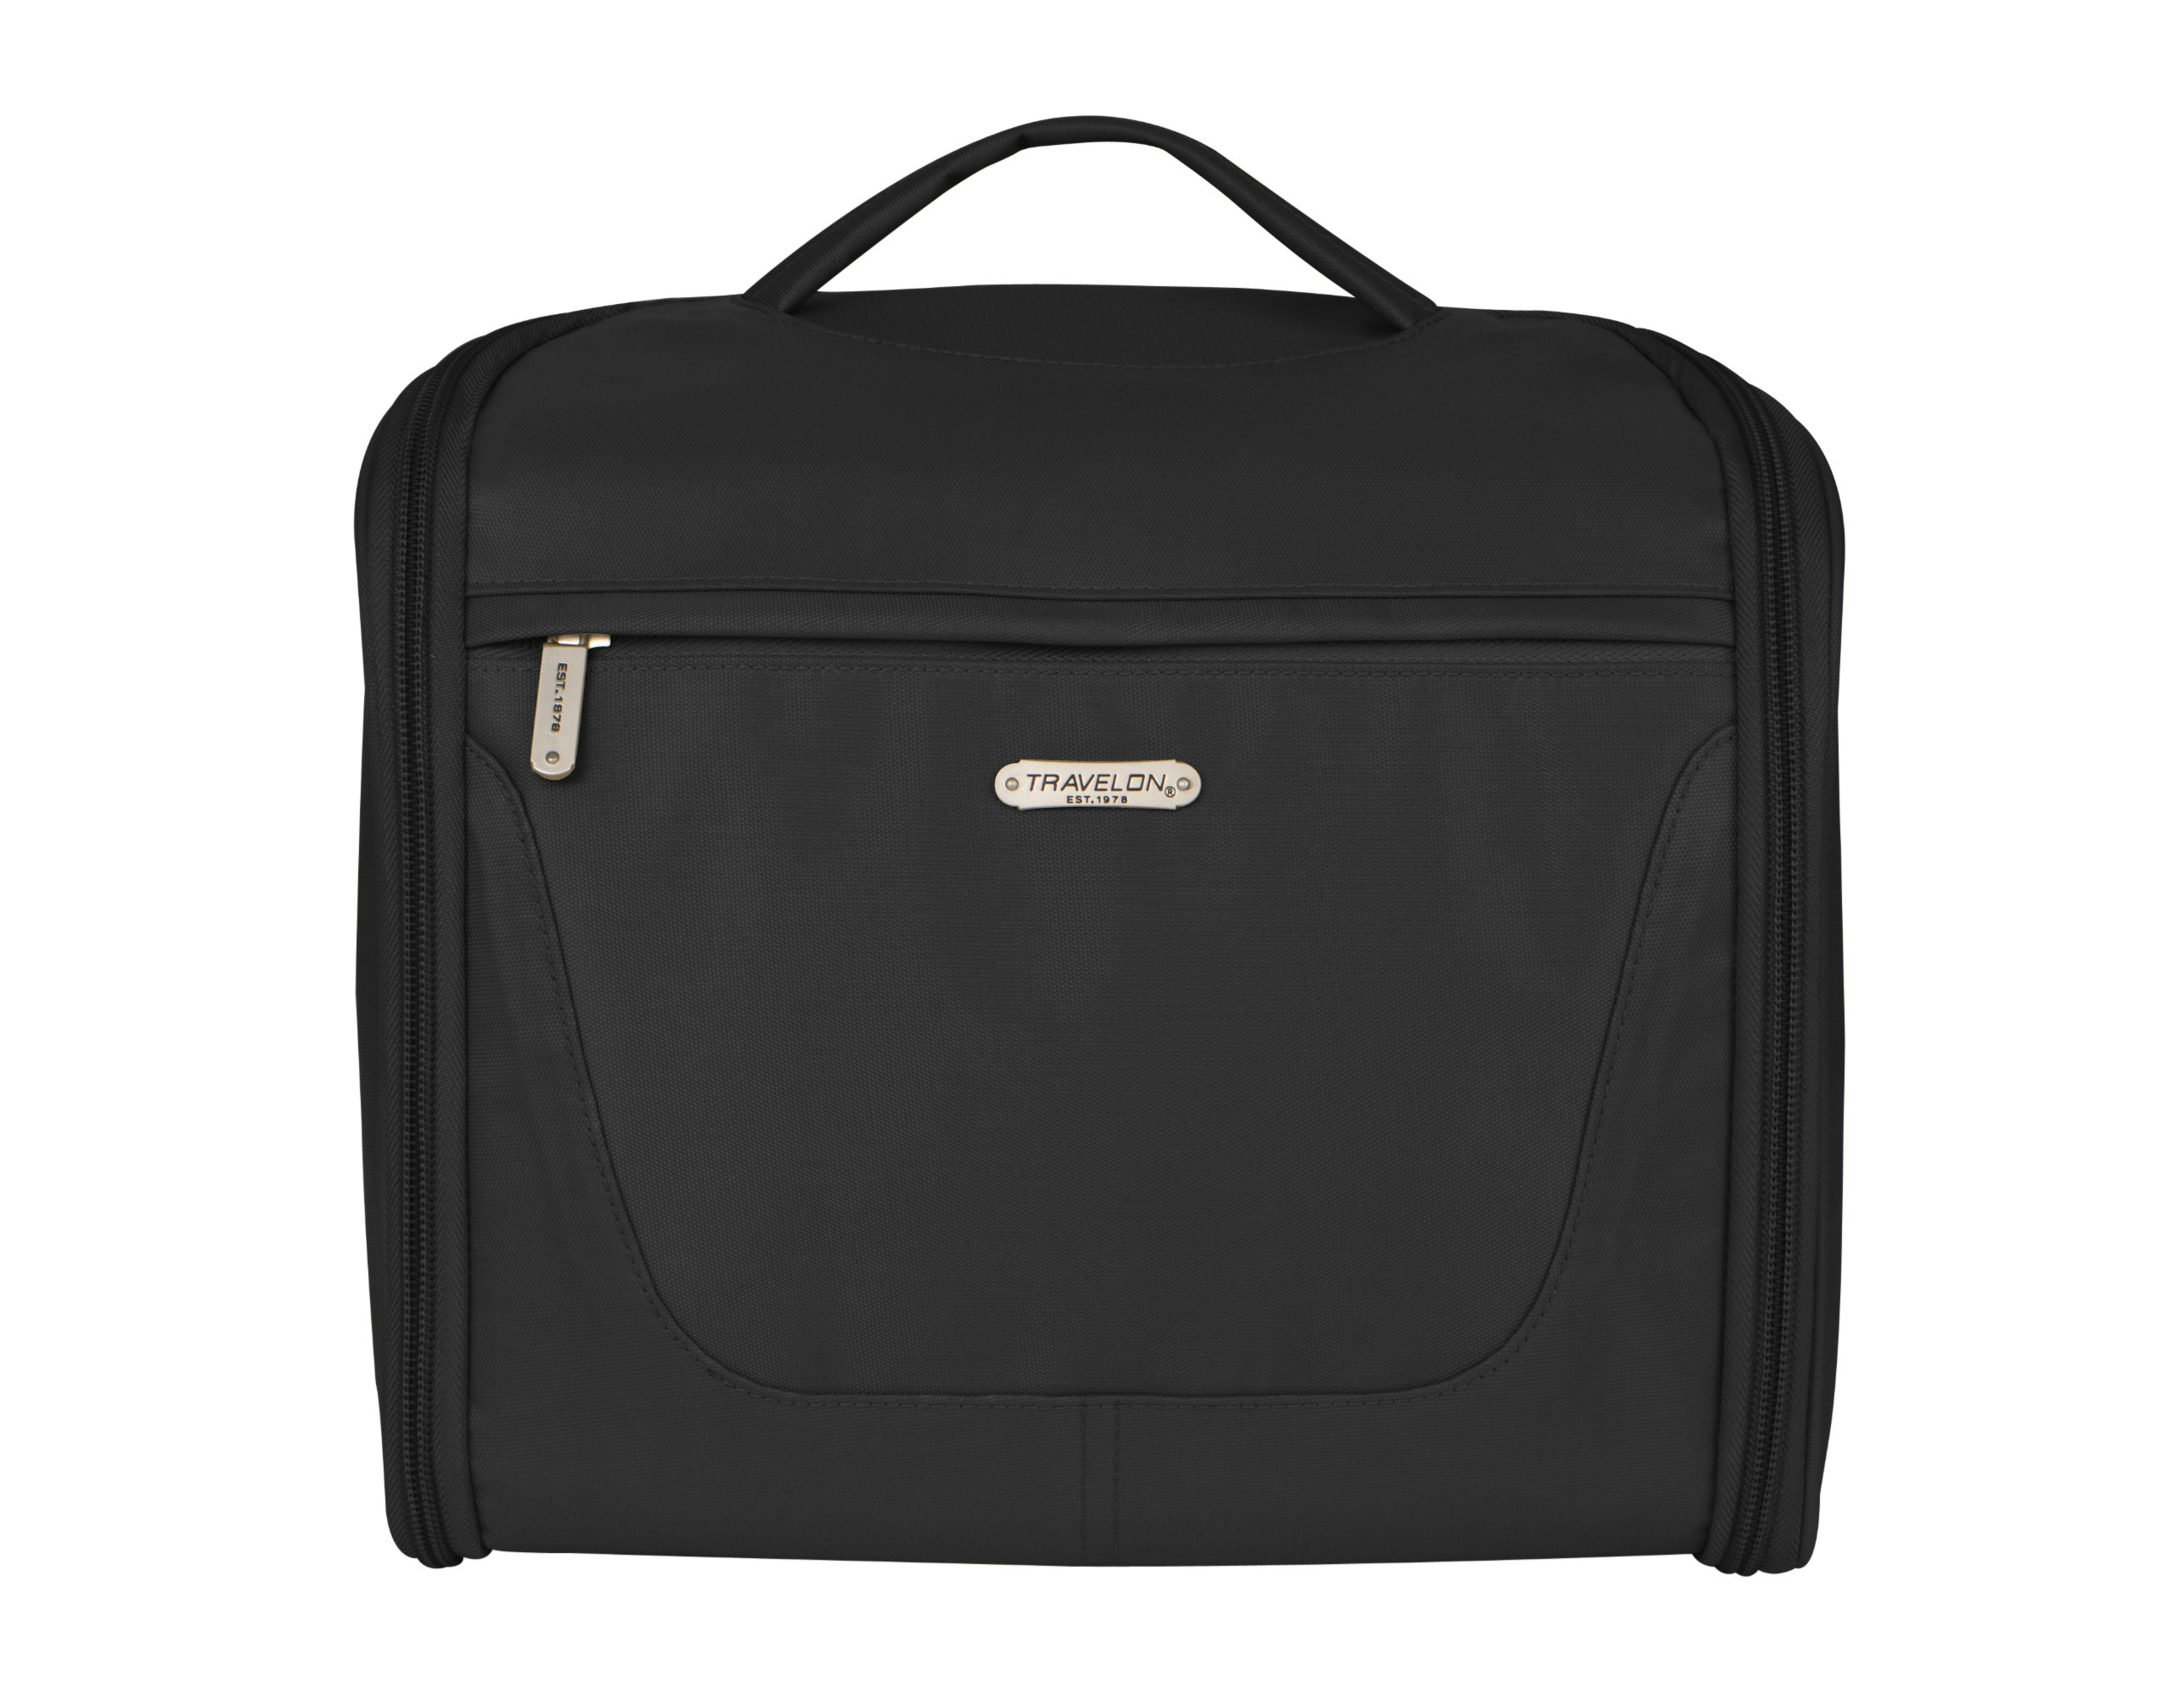 Travelon Mini Independence Bag, Black, One Size by Travelon